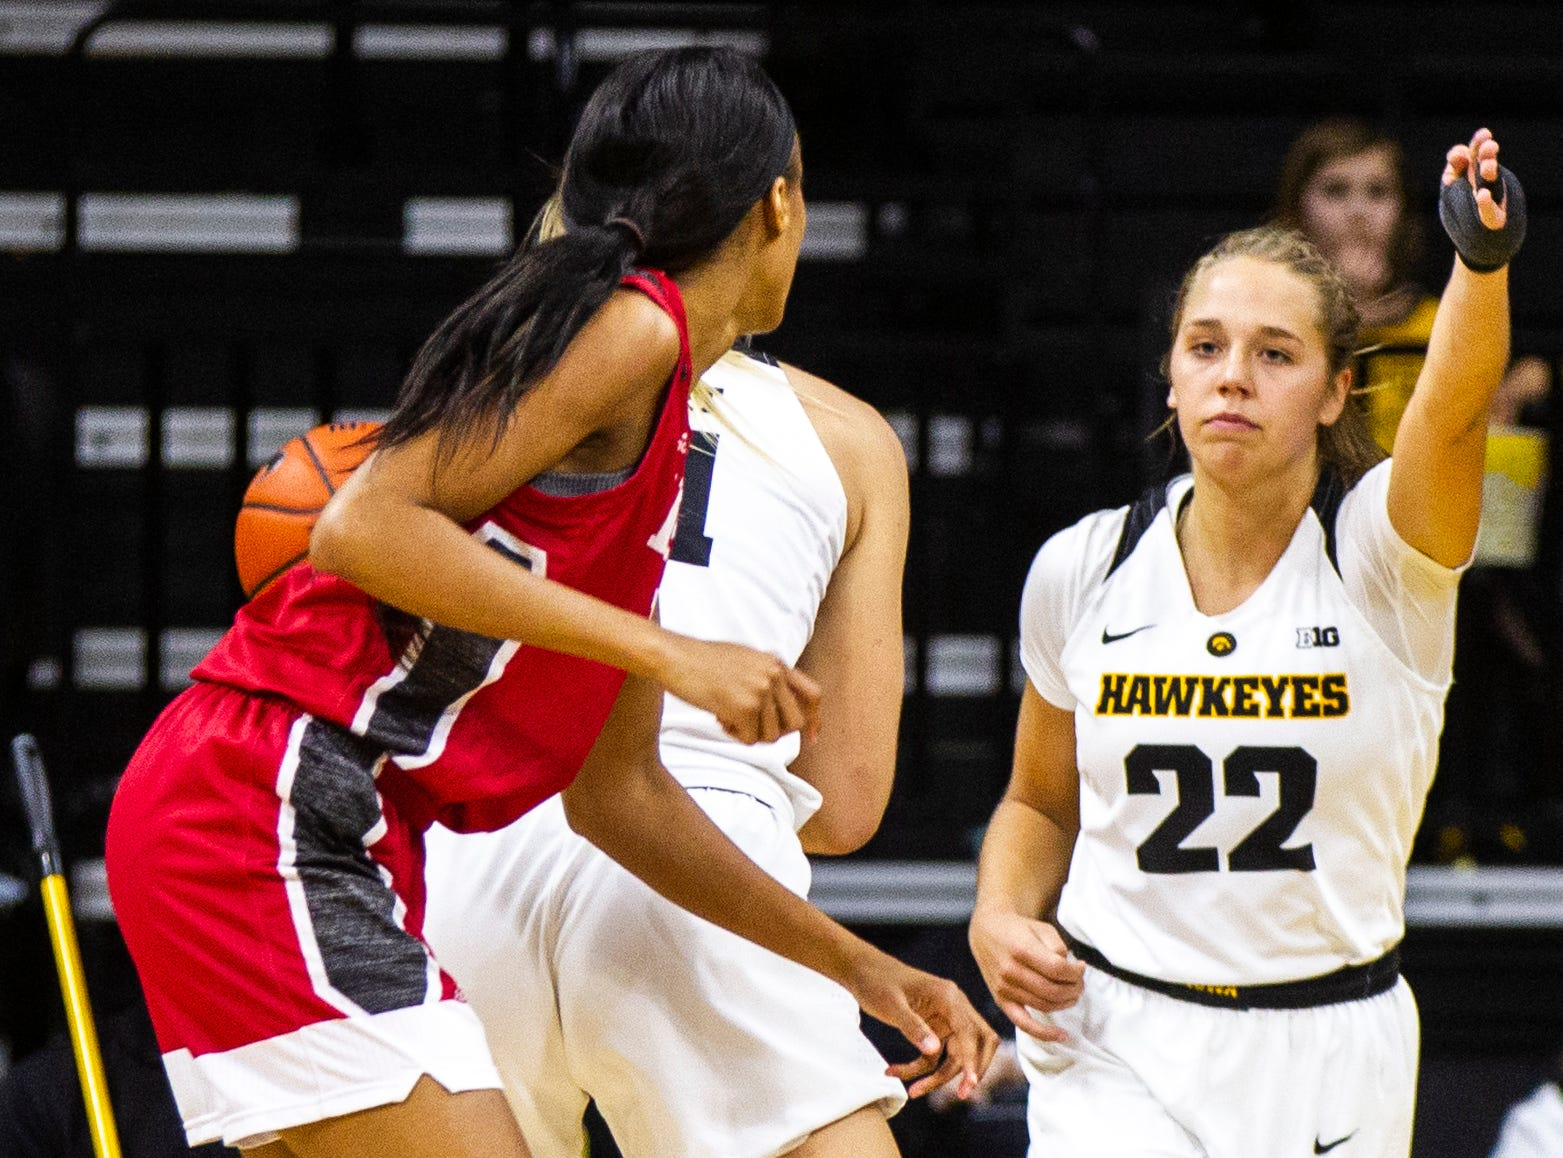 Iowa guard Kathleen Doyle (22) gestures for possesion during a NCAA women's basketball game on Saturday, Dec. 8, 2018, at Carver-Hawkeye Arena in Iowa City.